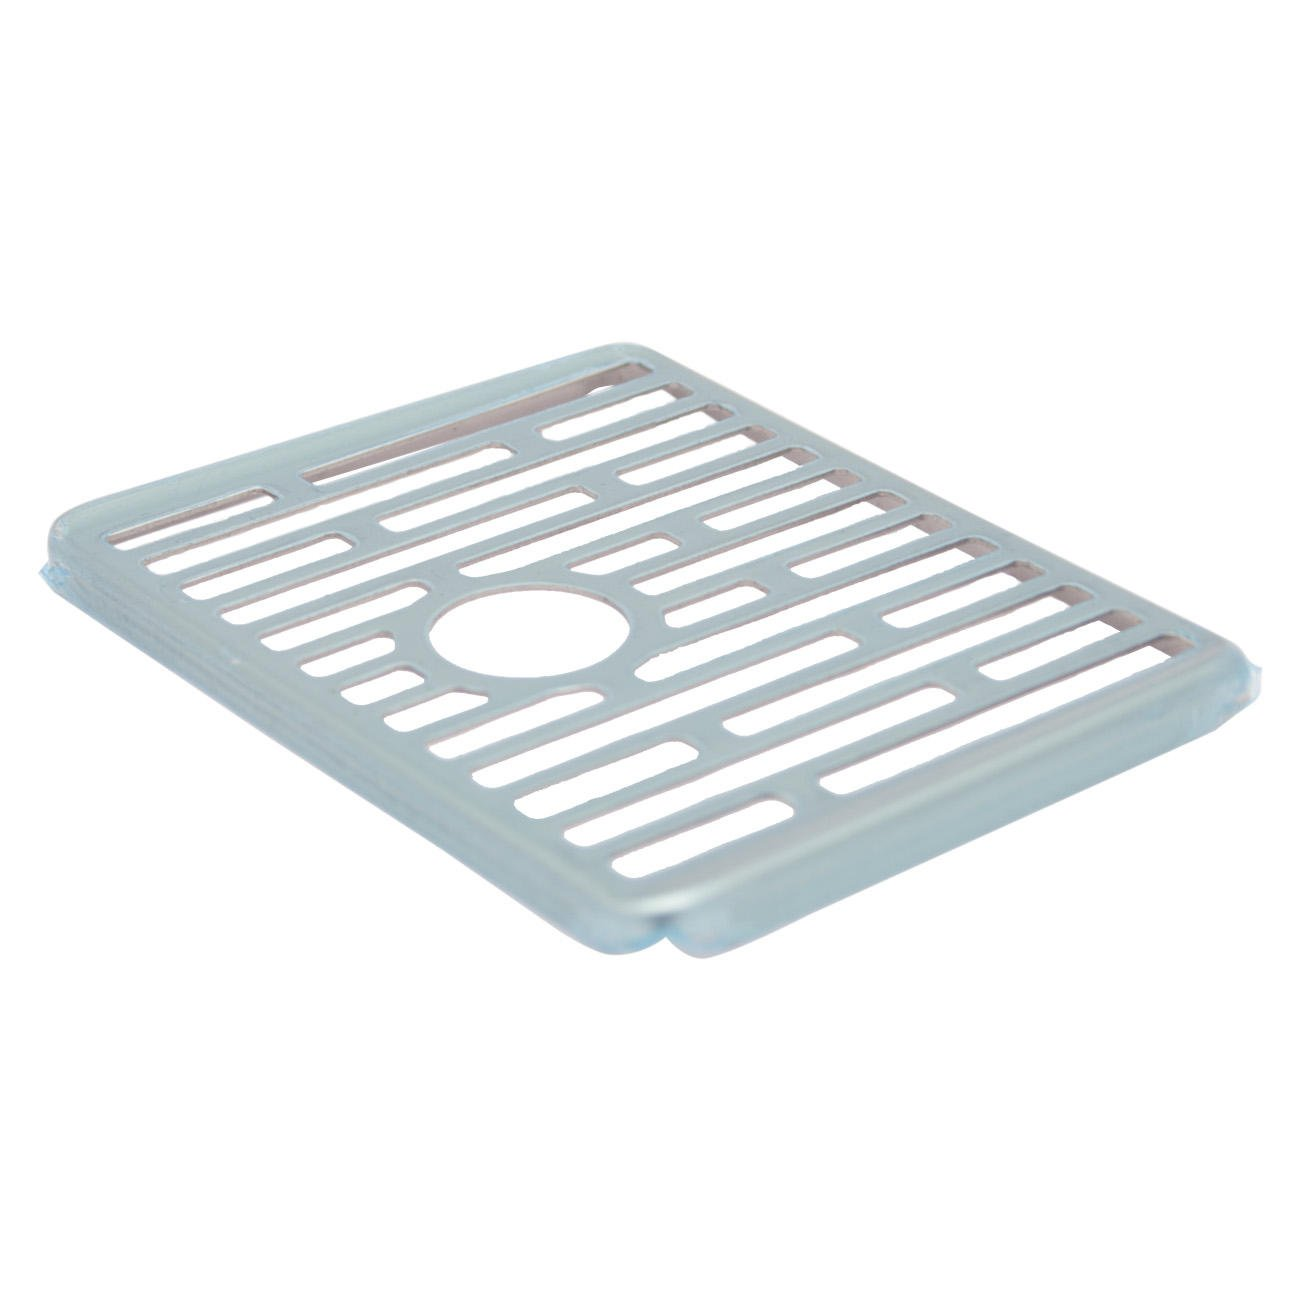 Krups Grid without Drip Tray MS-622549 for Dolce Gusto Circolo Krups GmbH